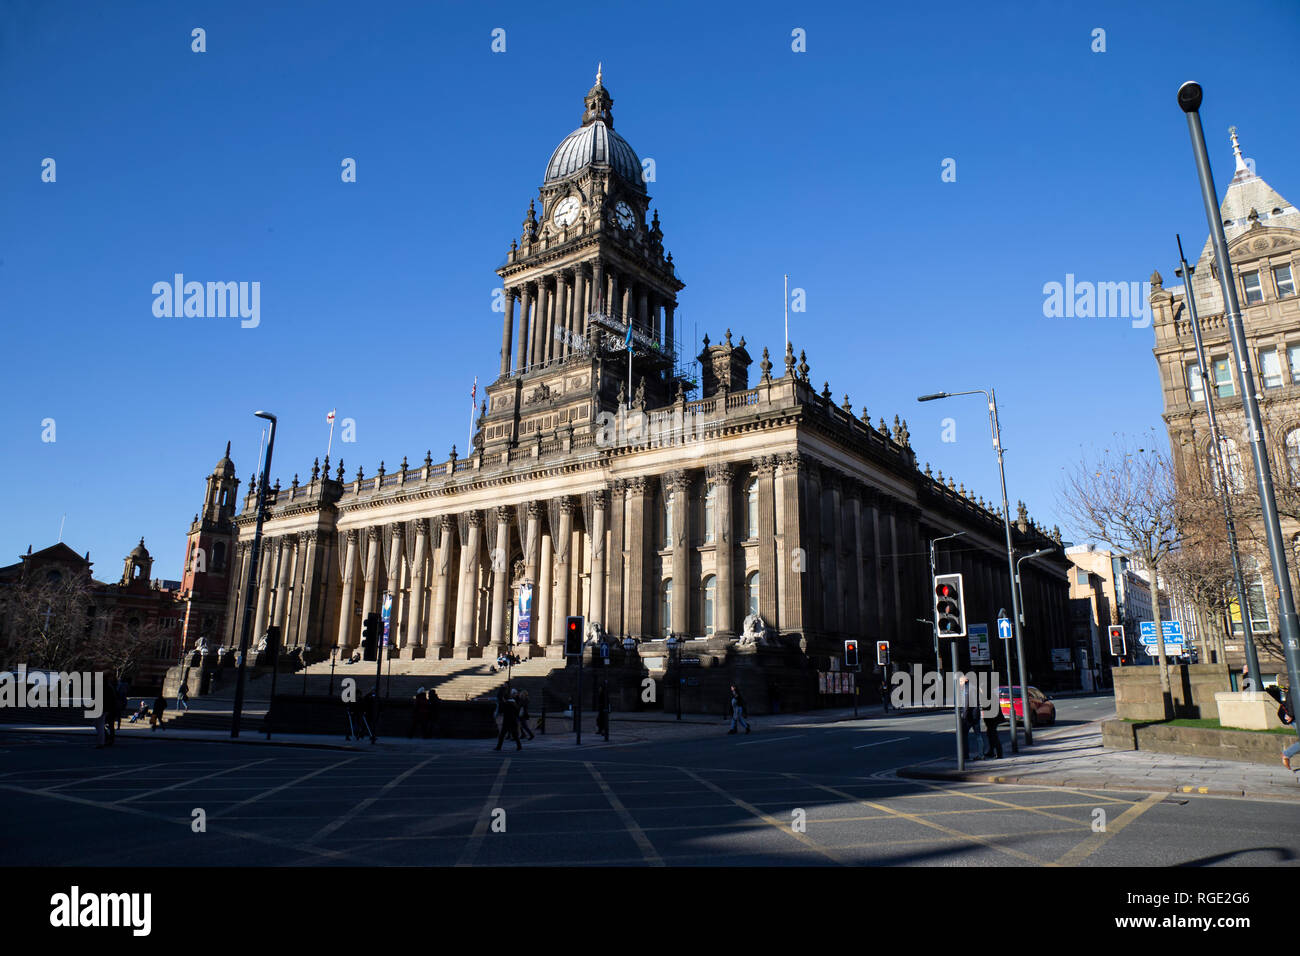 Leeds Town Hall on the Headrow in Leeds City Centre completed in 1858 and one of the largest town halls in the U.K. - Stock Image